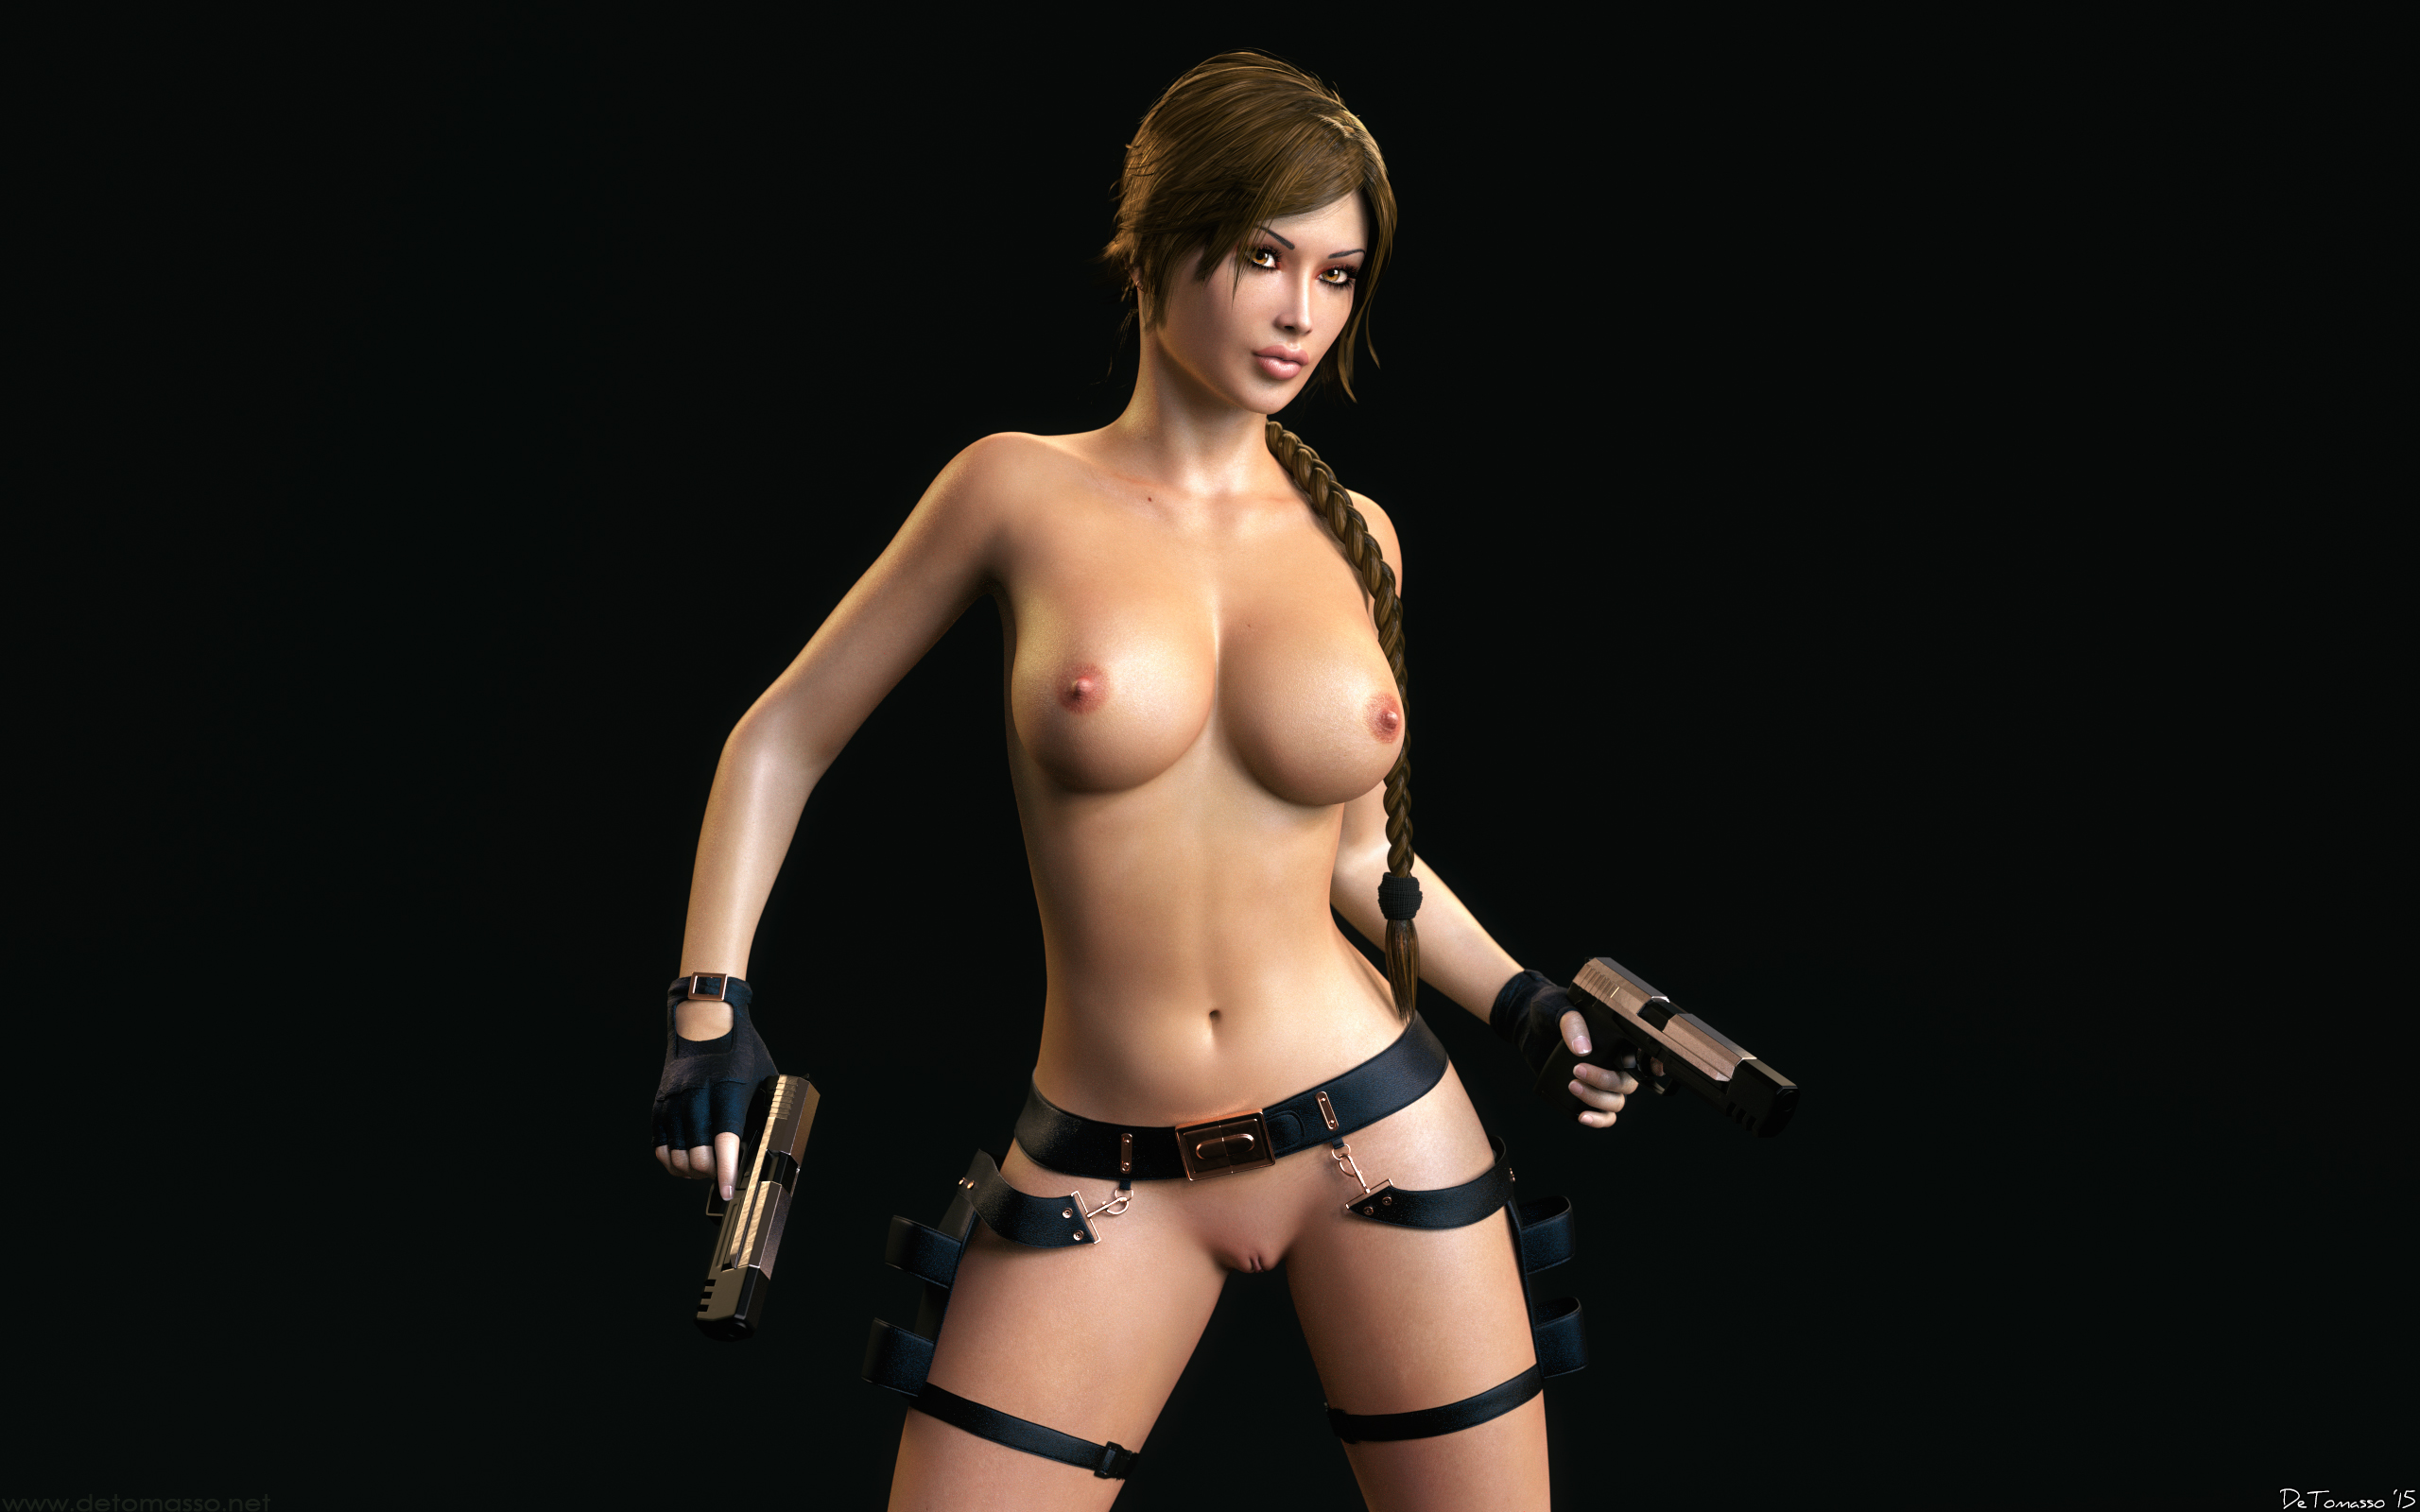 Lara croft underworld nude glitch porncraft gallery